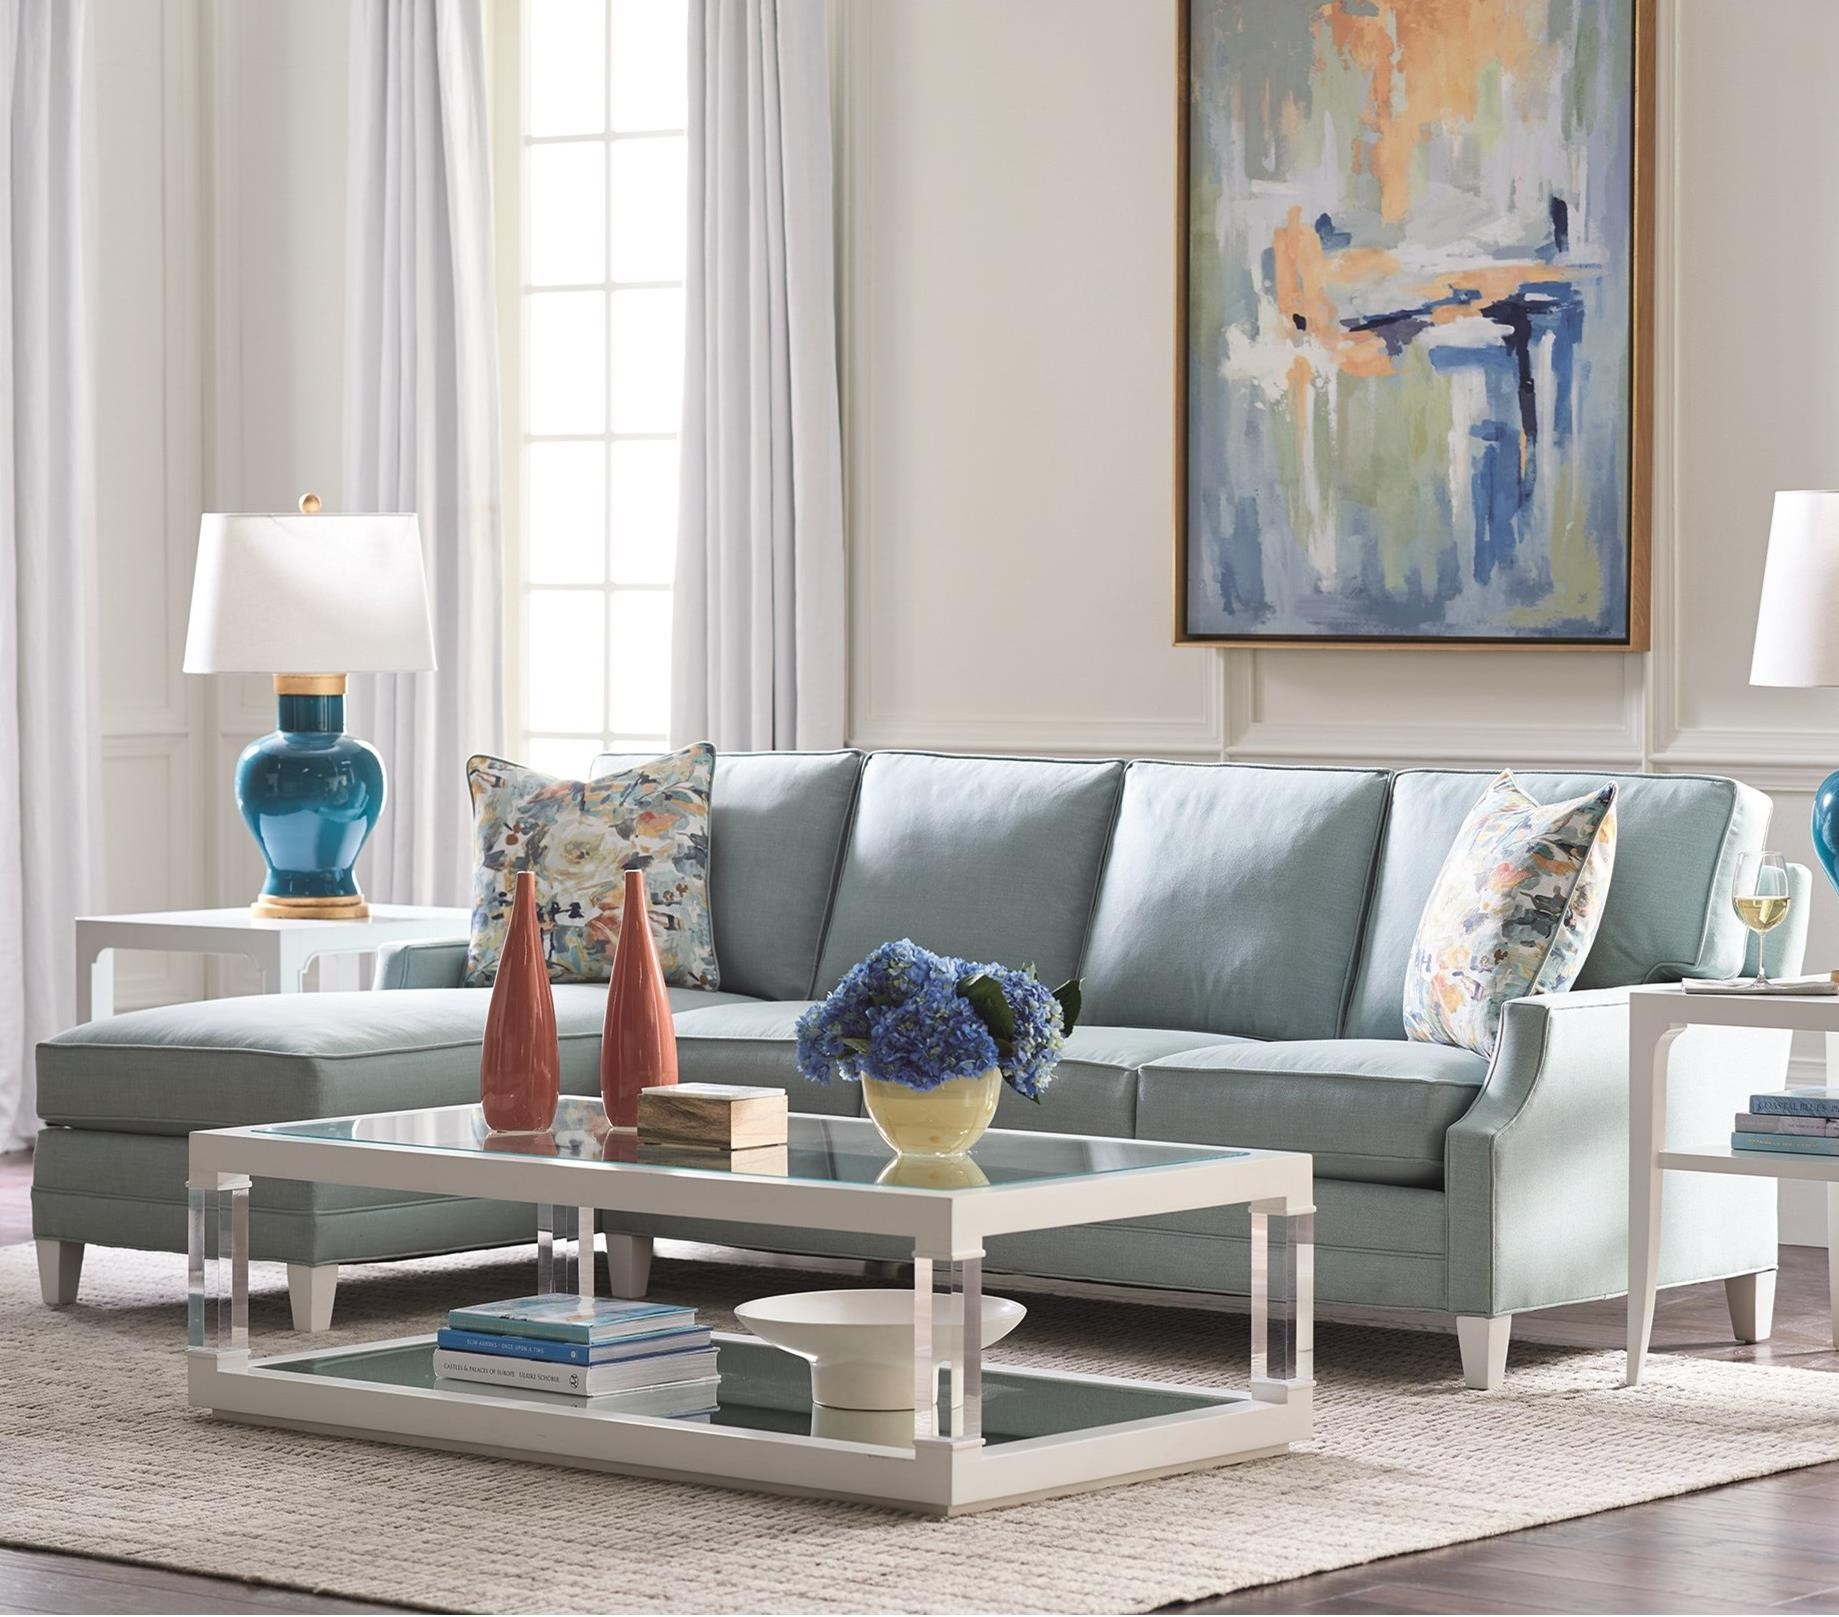 Personal Design Series Customizable Bristol 2-Piece Chaise Sofa by Lexington at Jacksonville Furniture Mart